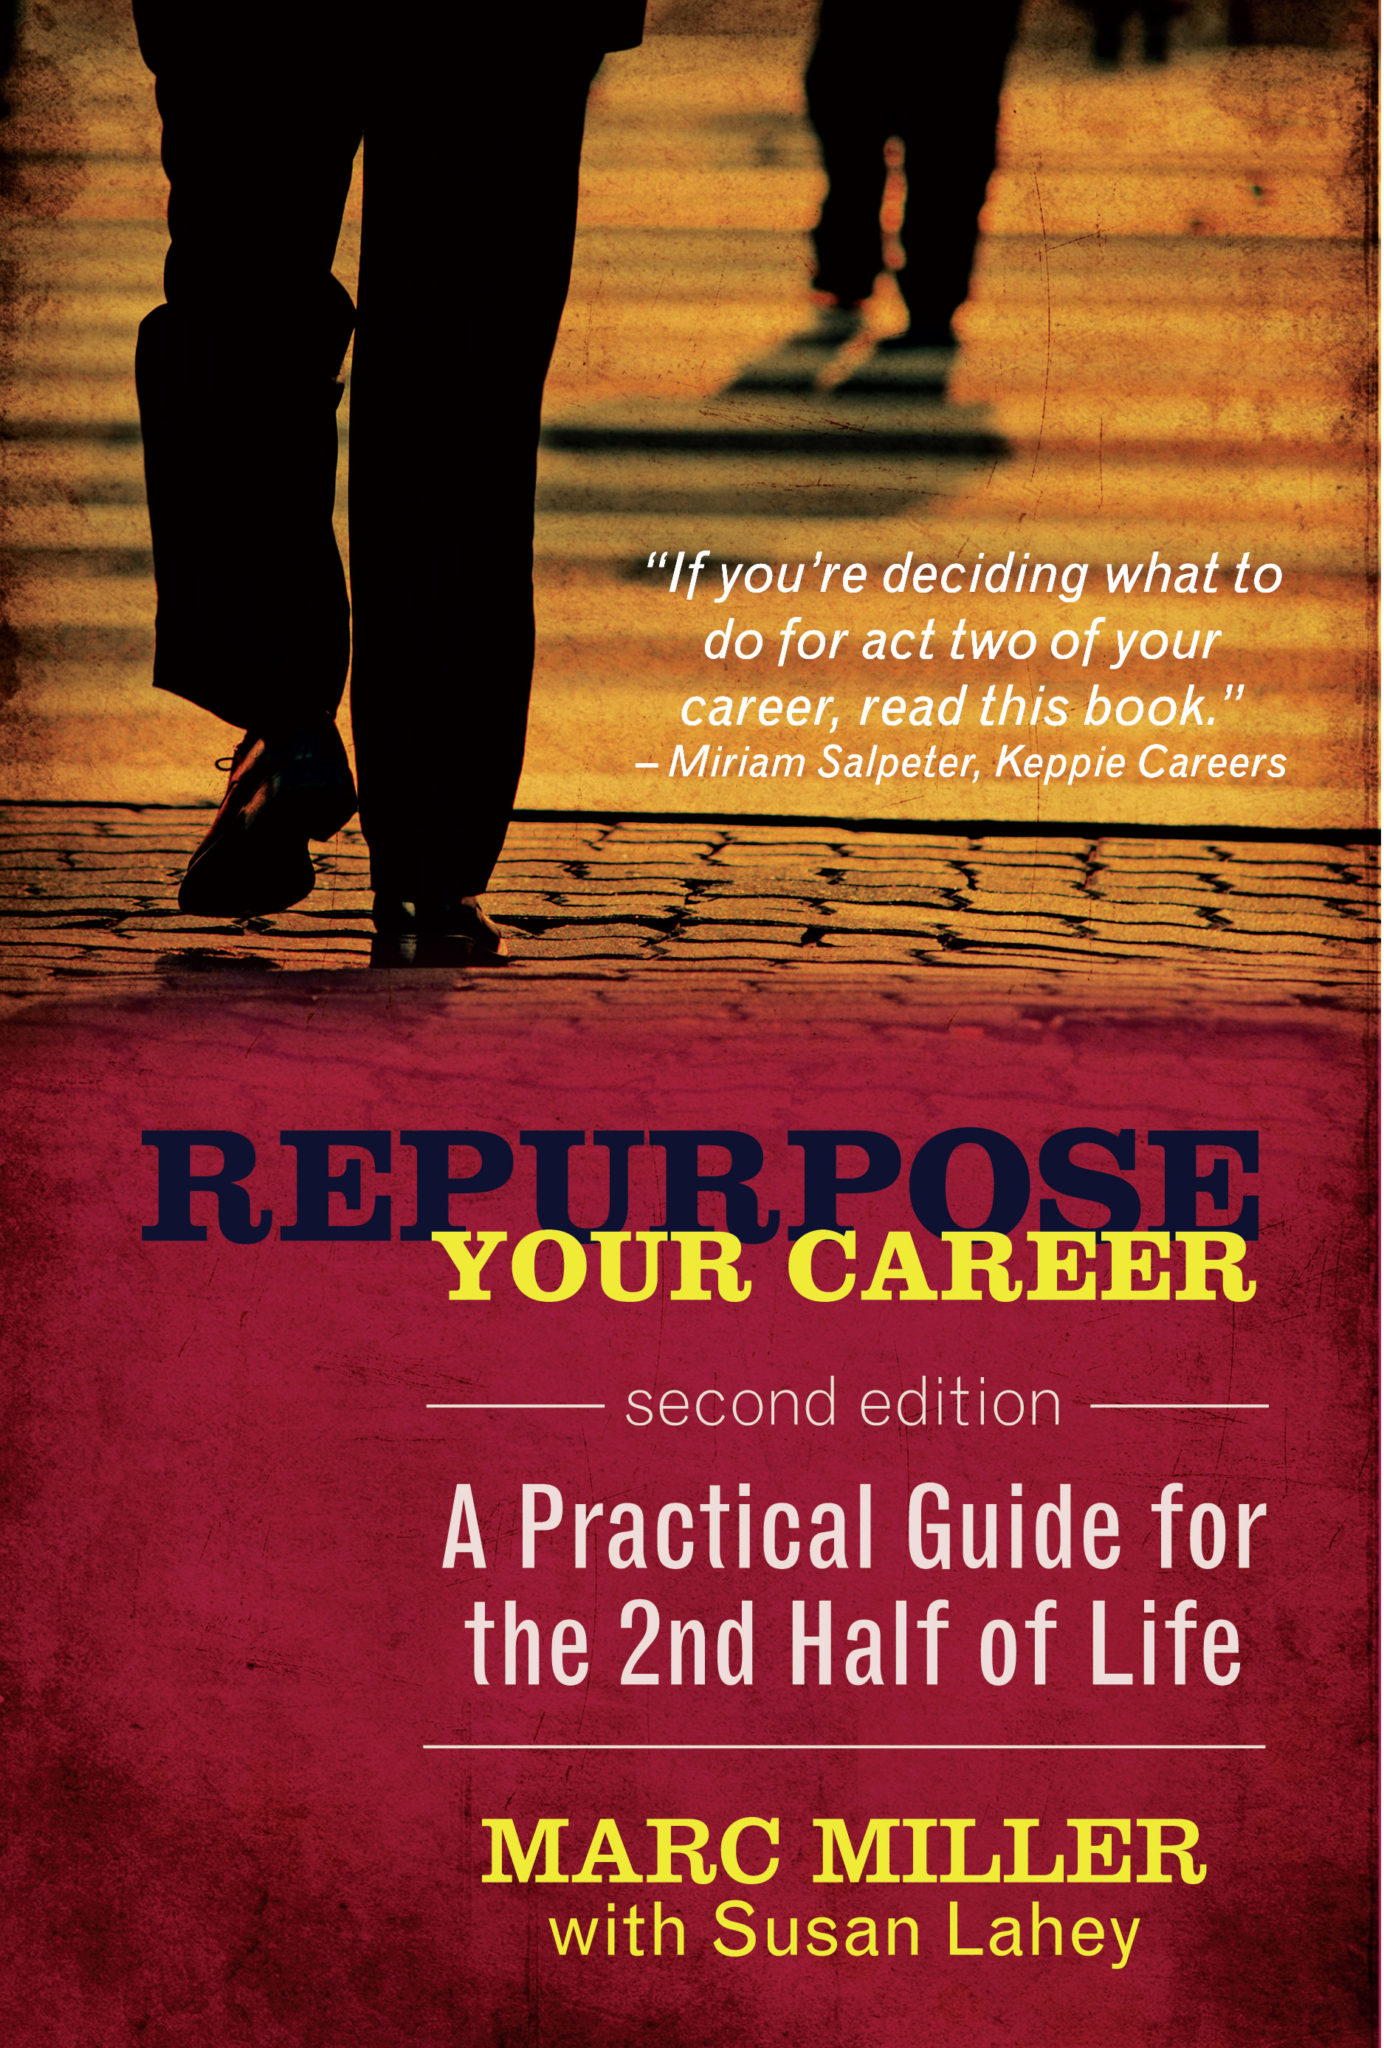 Career Mistakes: Failure is a Great Option A Chapter from Repurpose Your Career by Marc Miller